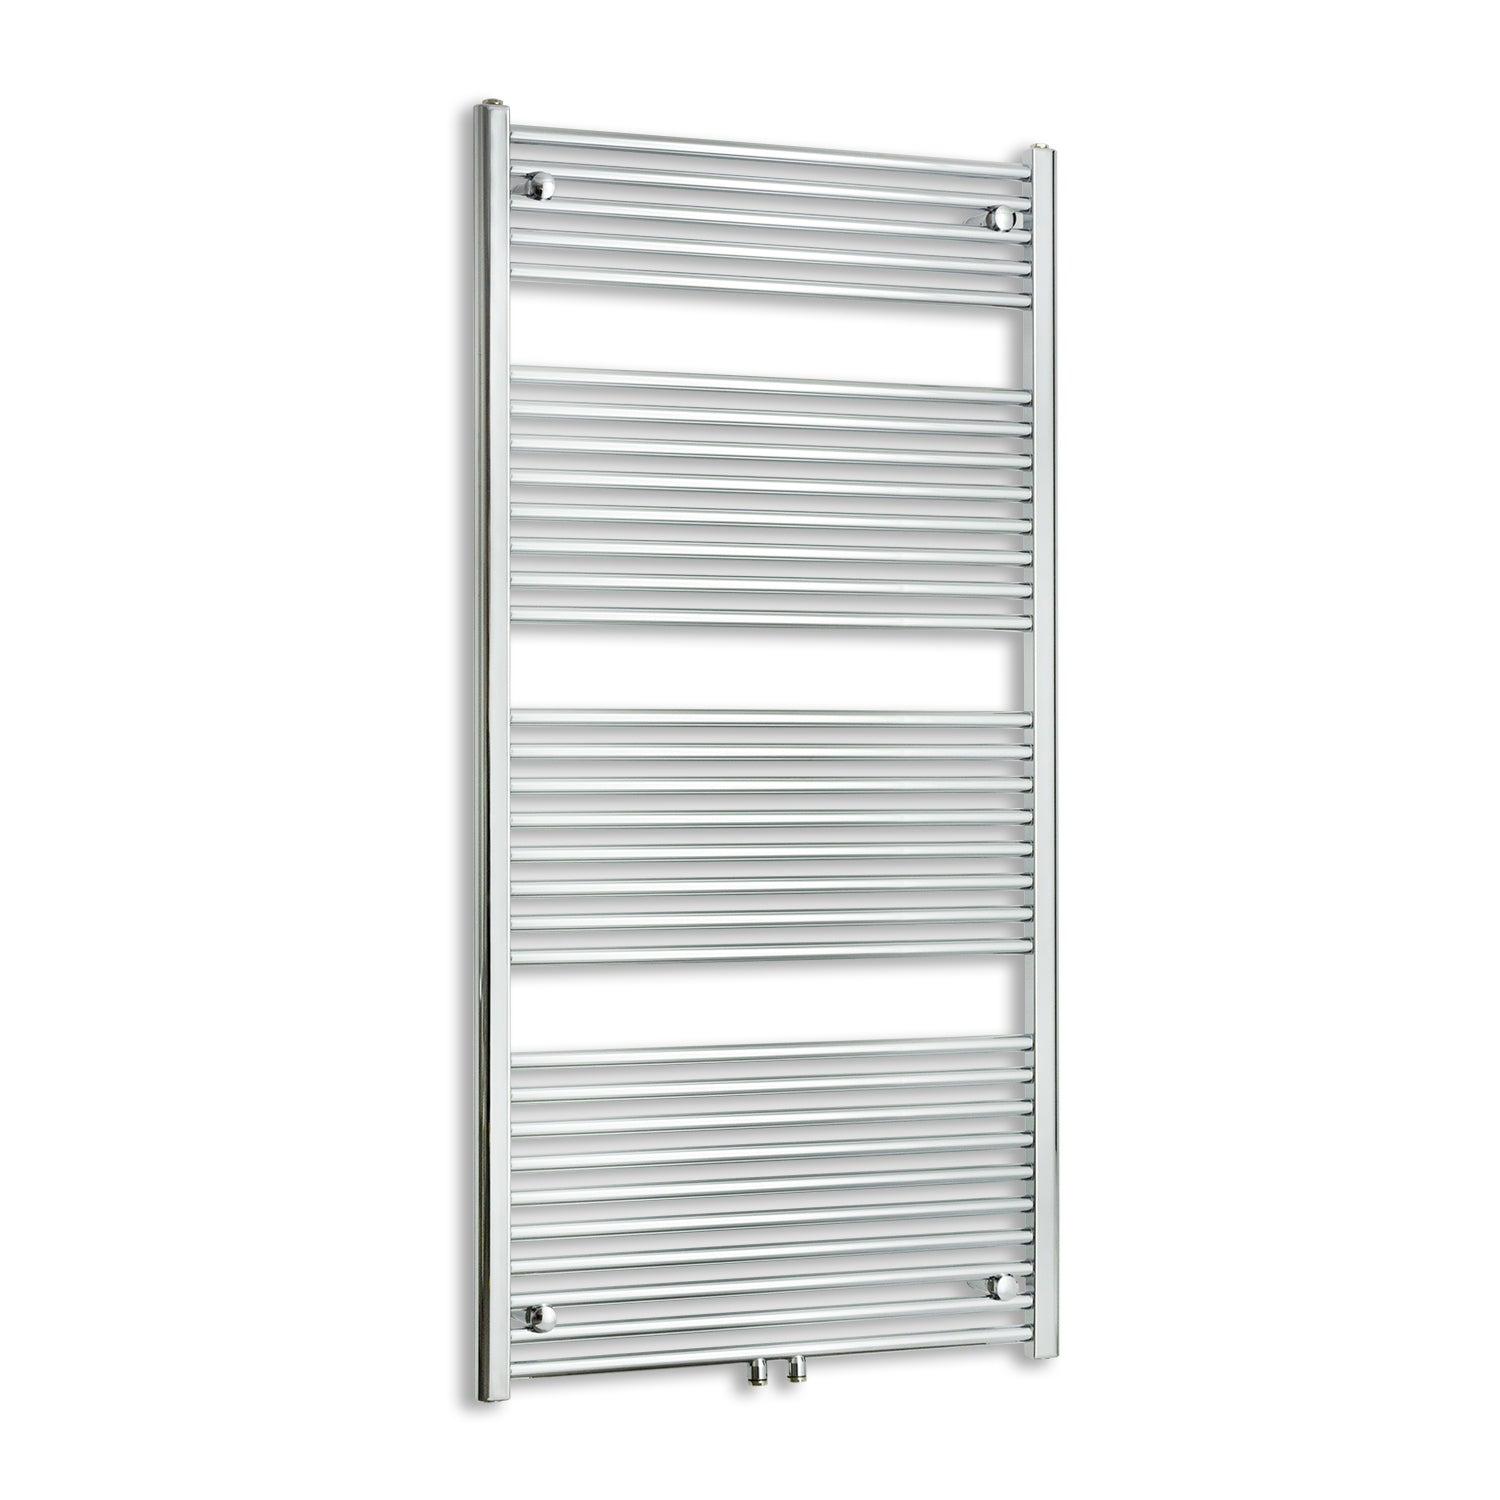 750mm Wide 1800mm High Straight Chrome Heated Towel Rail Radiator HTR Dual Fuel,Towel Rail Only